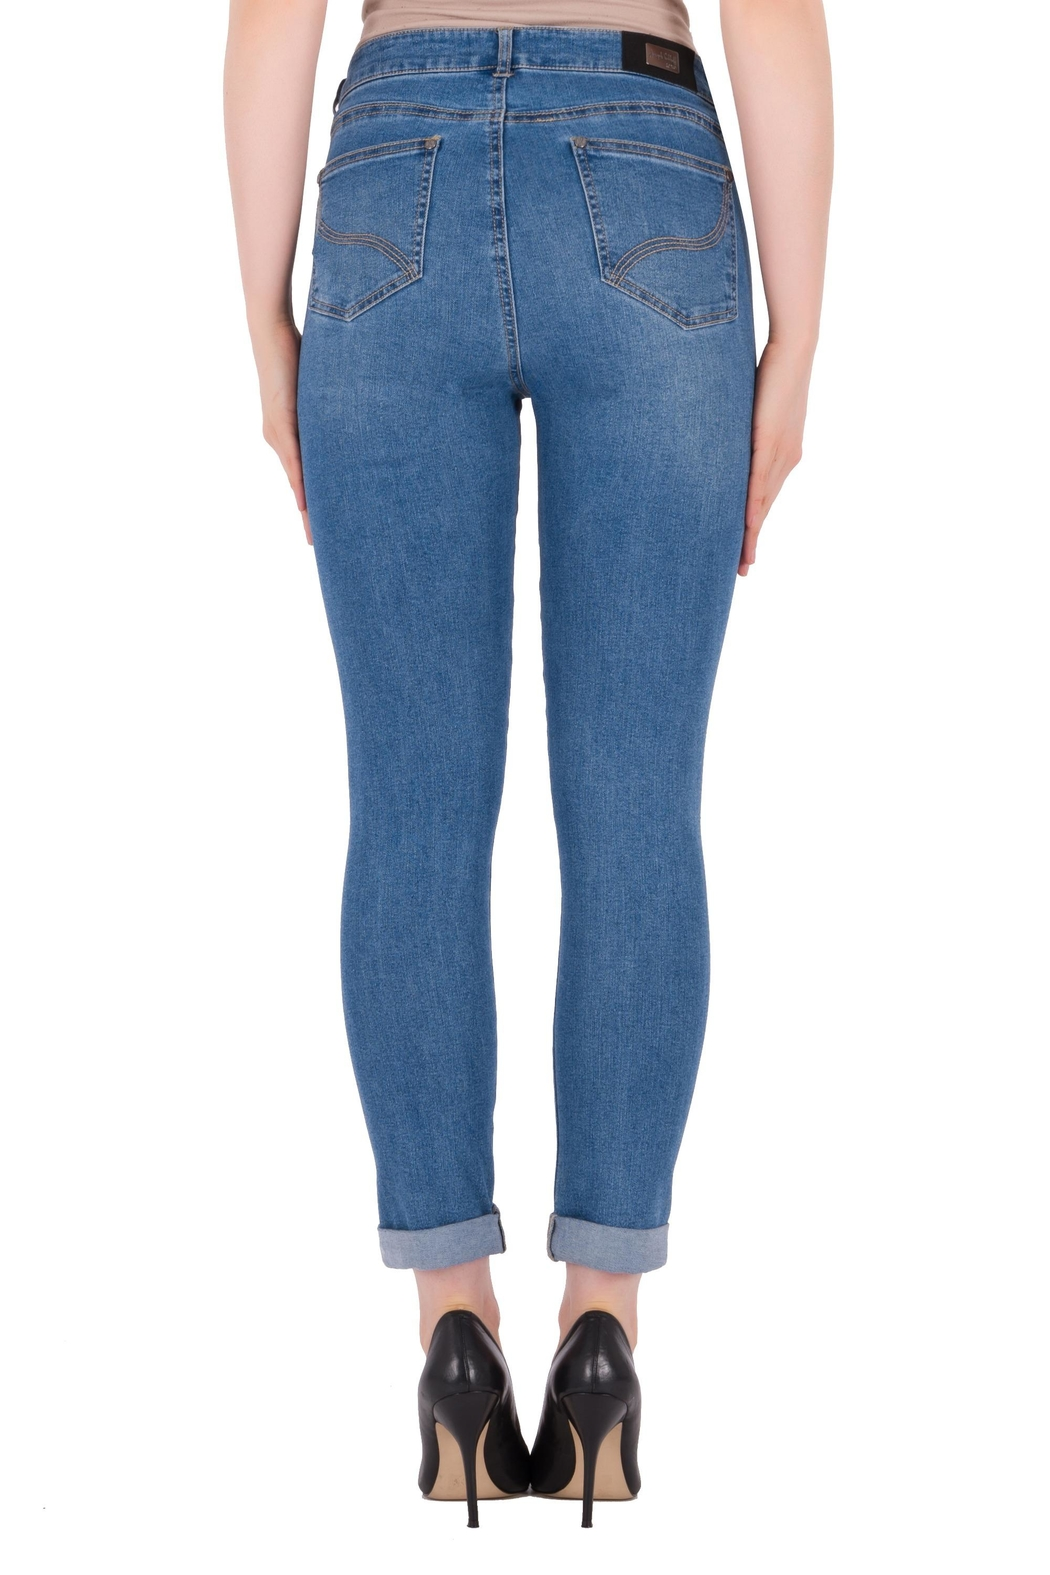 Joseph Ribkoff Rip Accent Jeans - Side Cropped Image